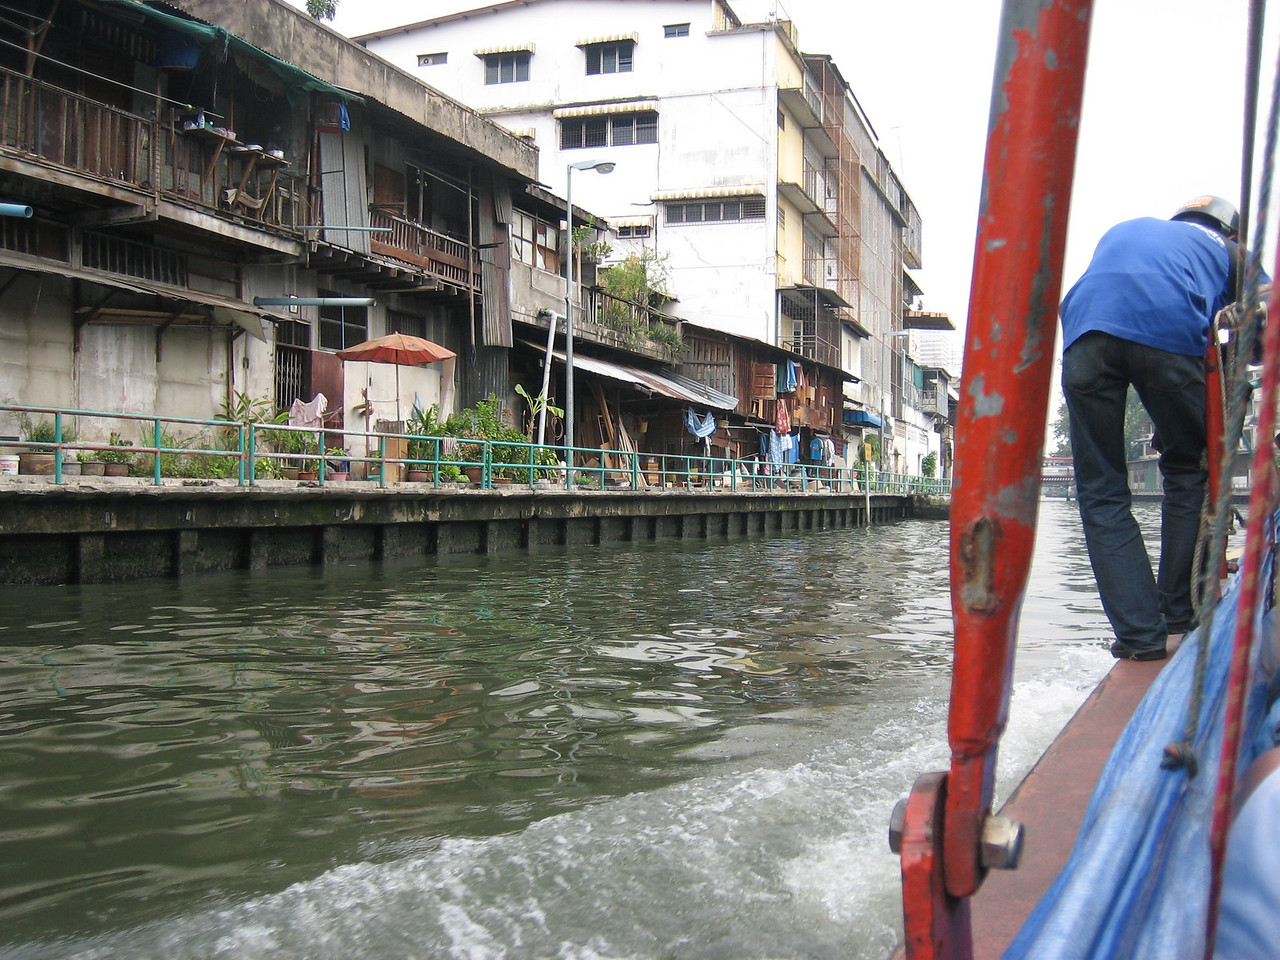 Canal boats get you through town FAST! Ticket-taker with helmet on stradling the side.